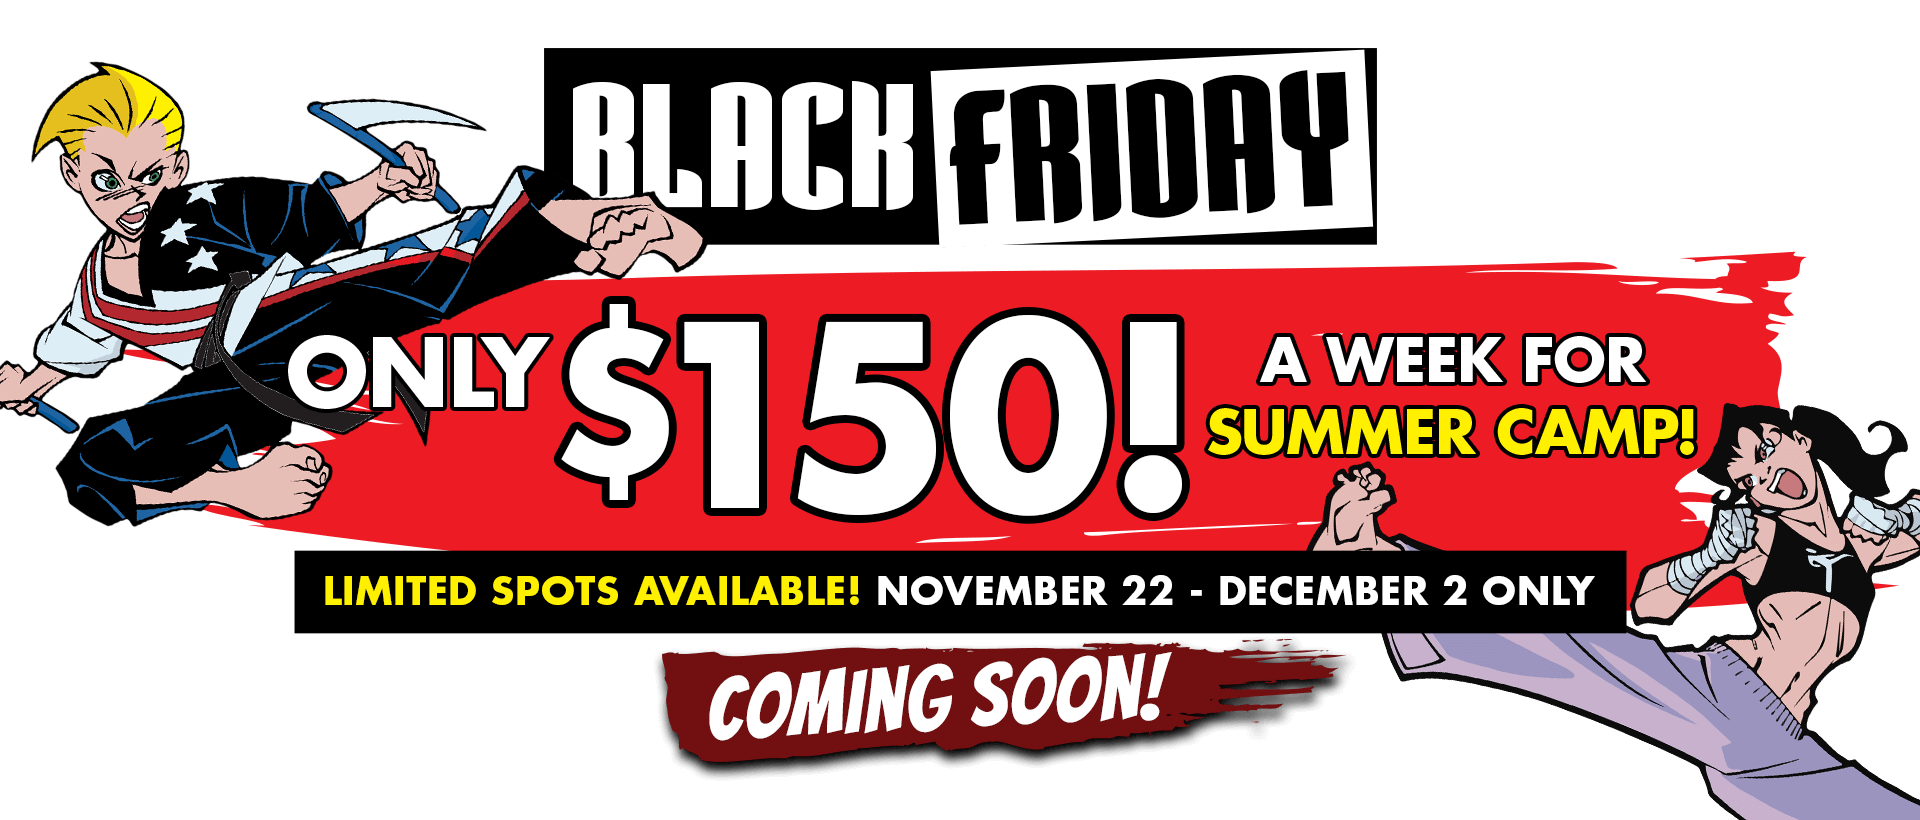 BLACK FRIDAY ONLY $150 A WEEK FOR SUMMER CAMP! LIMITED SPOTS AVAILABLE! NOVEMBER 22 - DECEMBER 2 ONLY